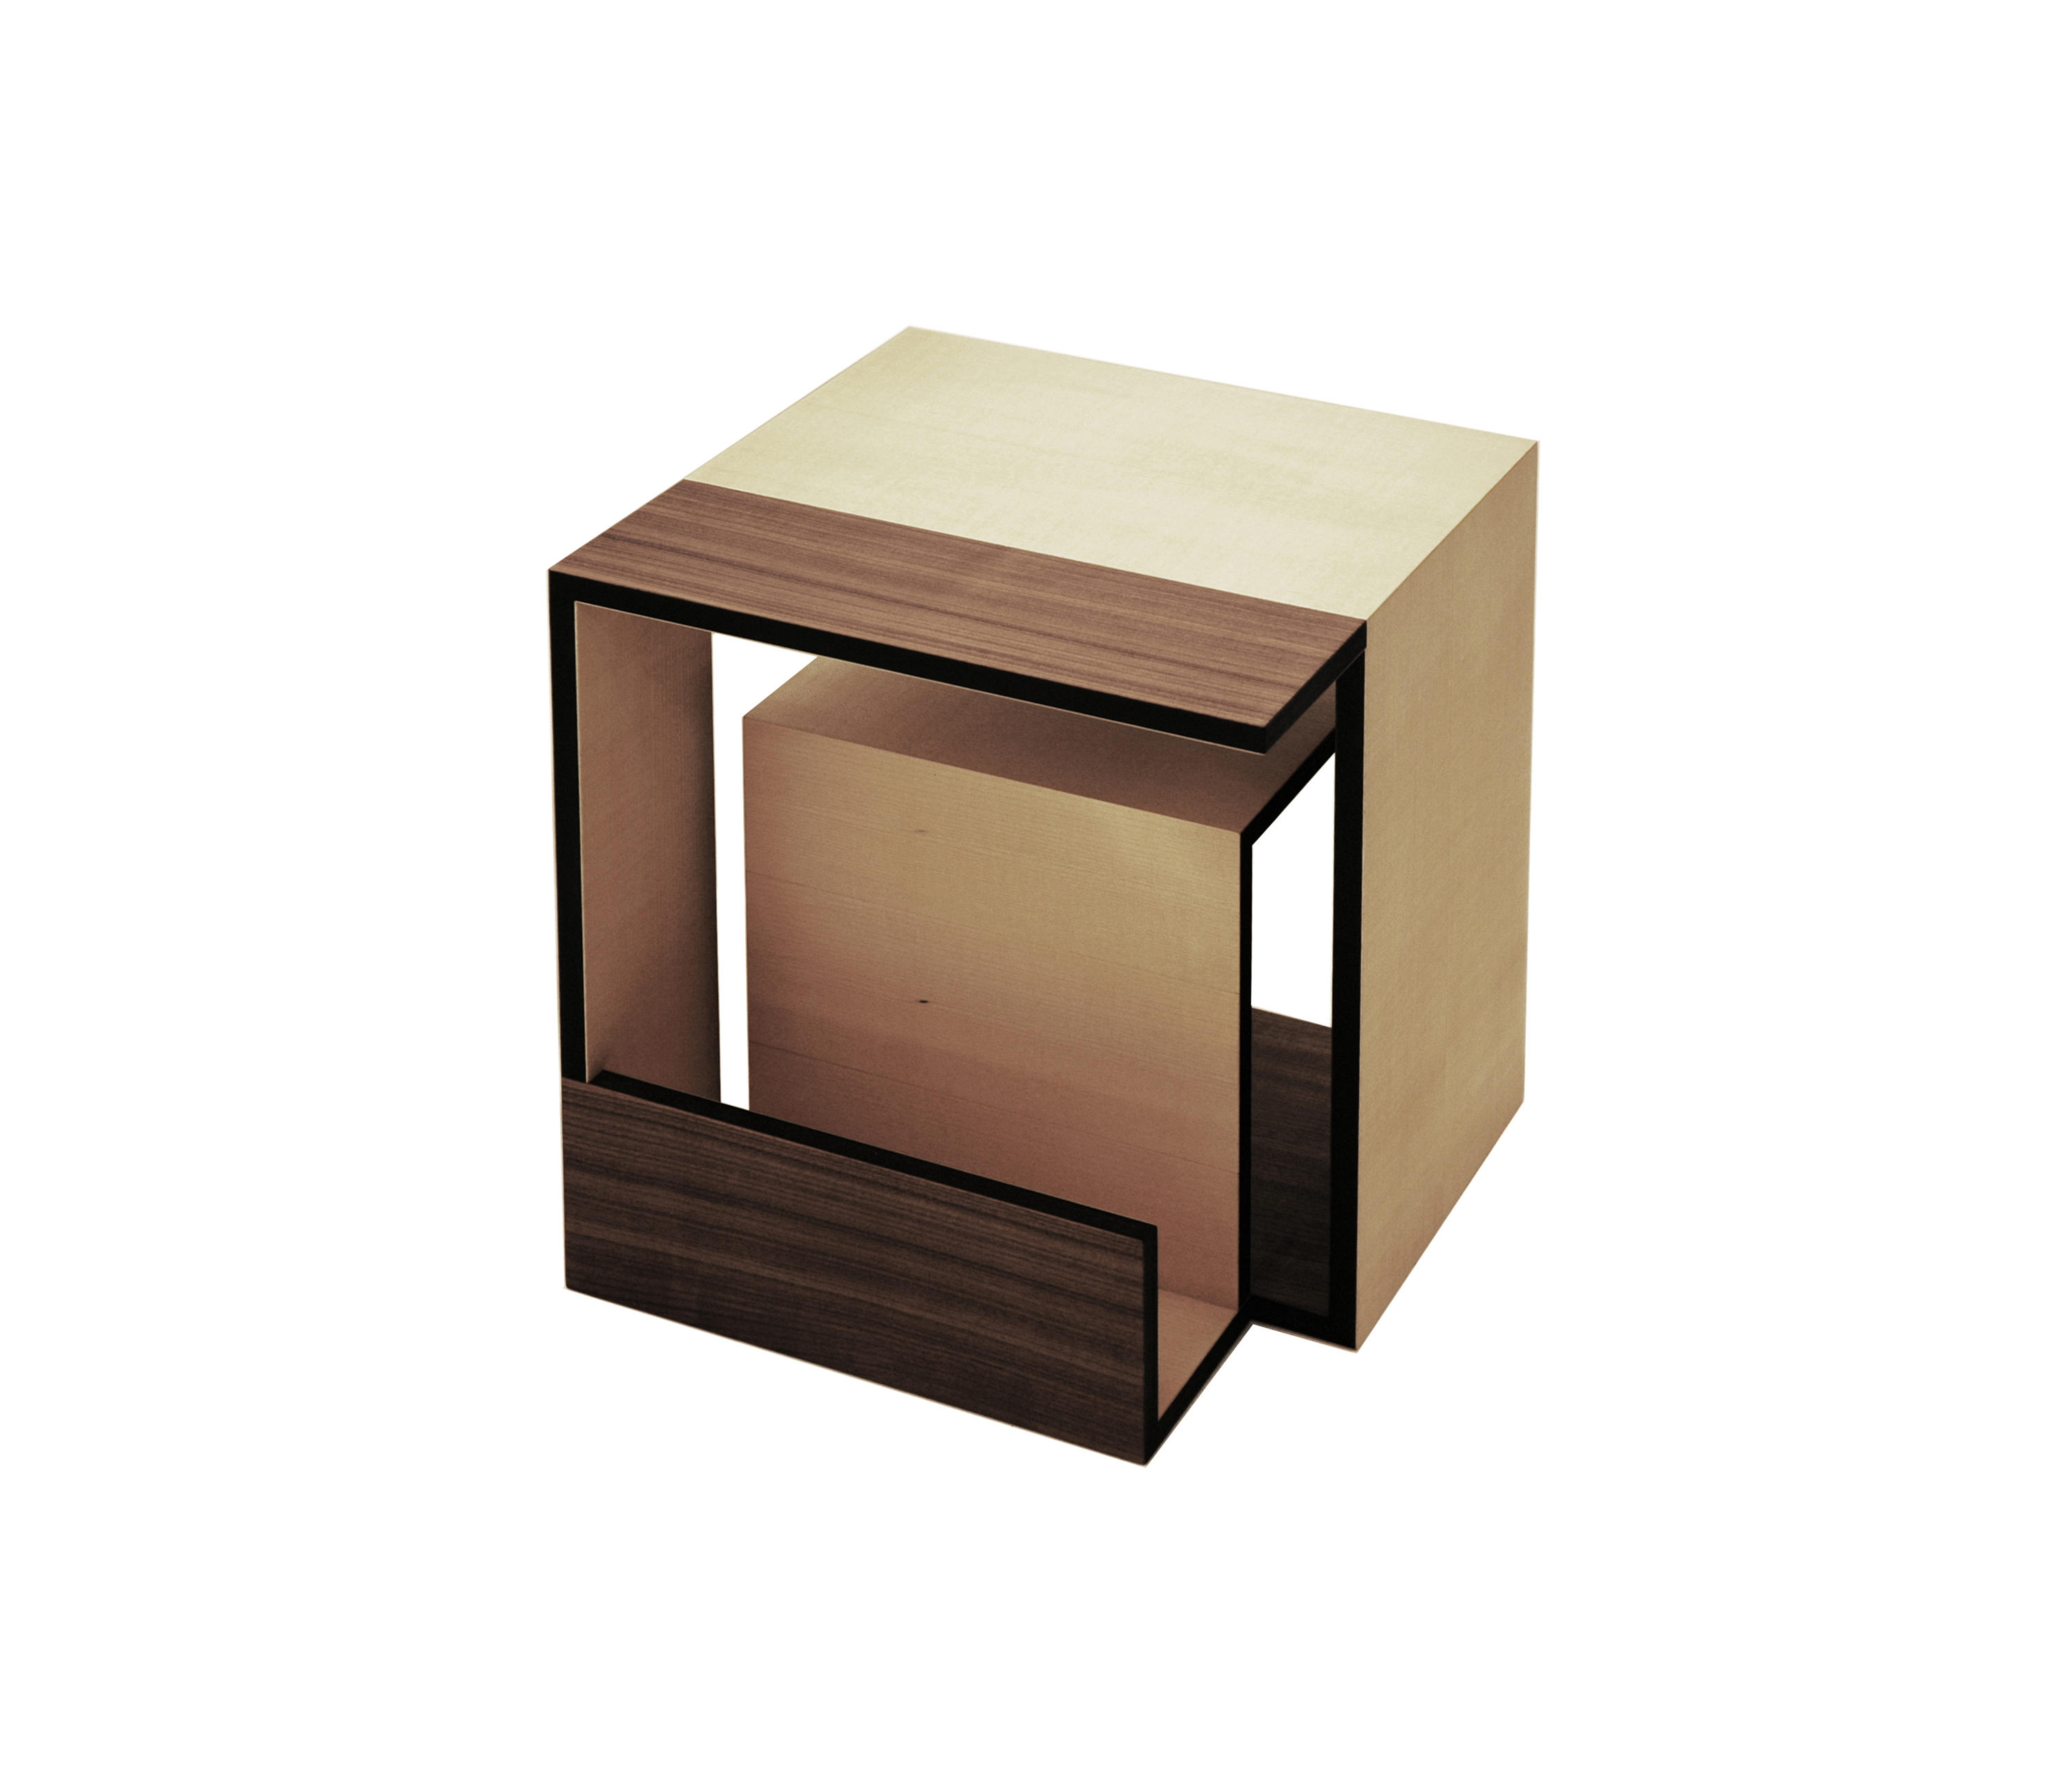 Cube Möbel Moebius Cube Side Tables From Xbritt Moebel Architonic